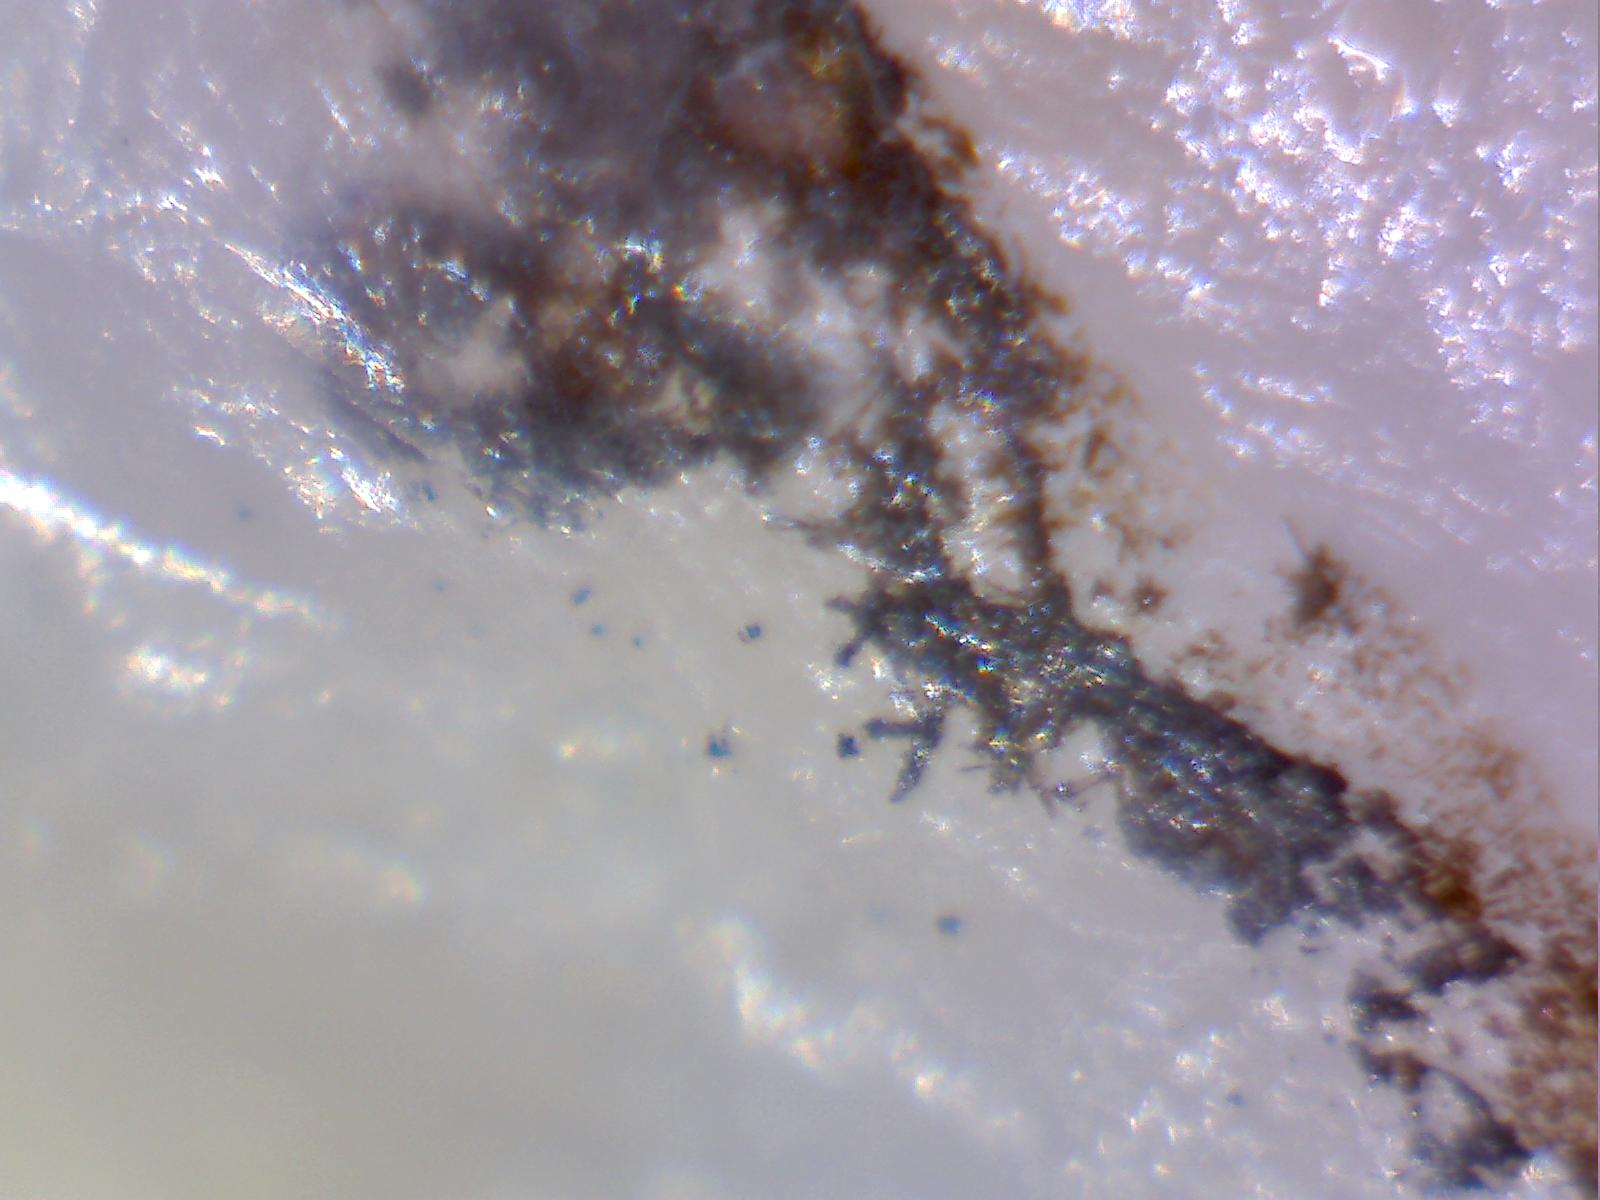 inclusions+in+quartz+019.jpg